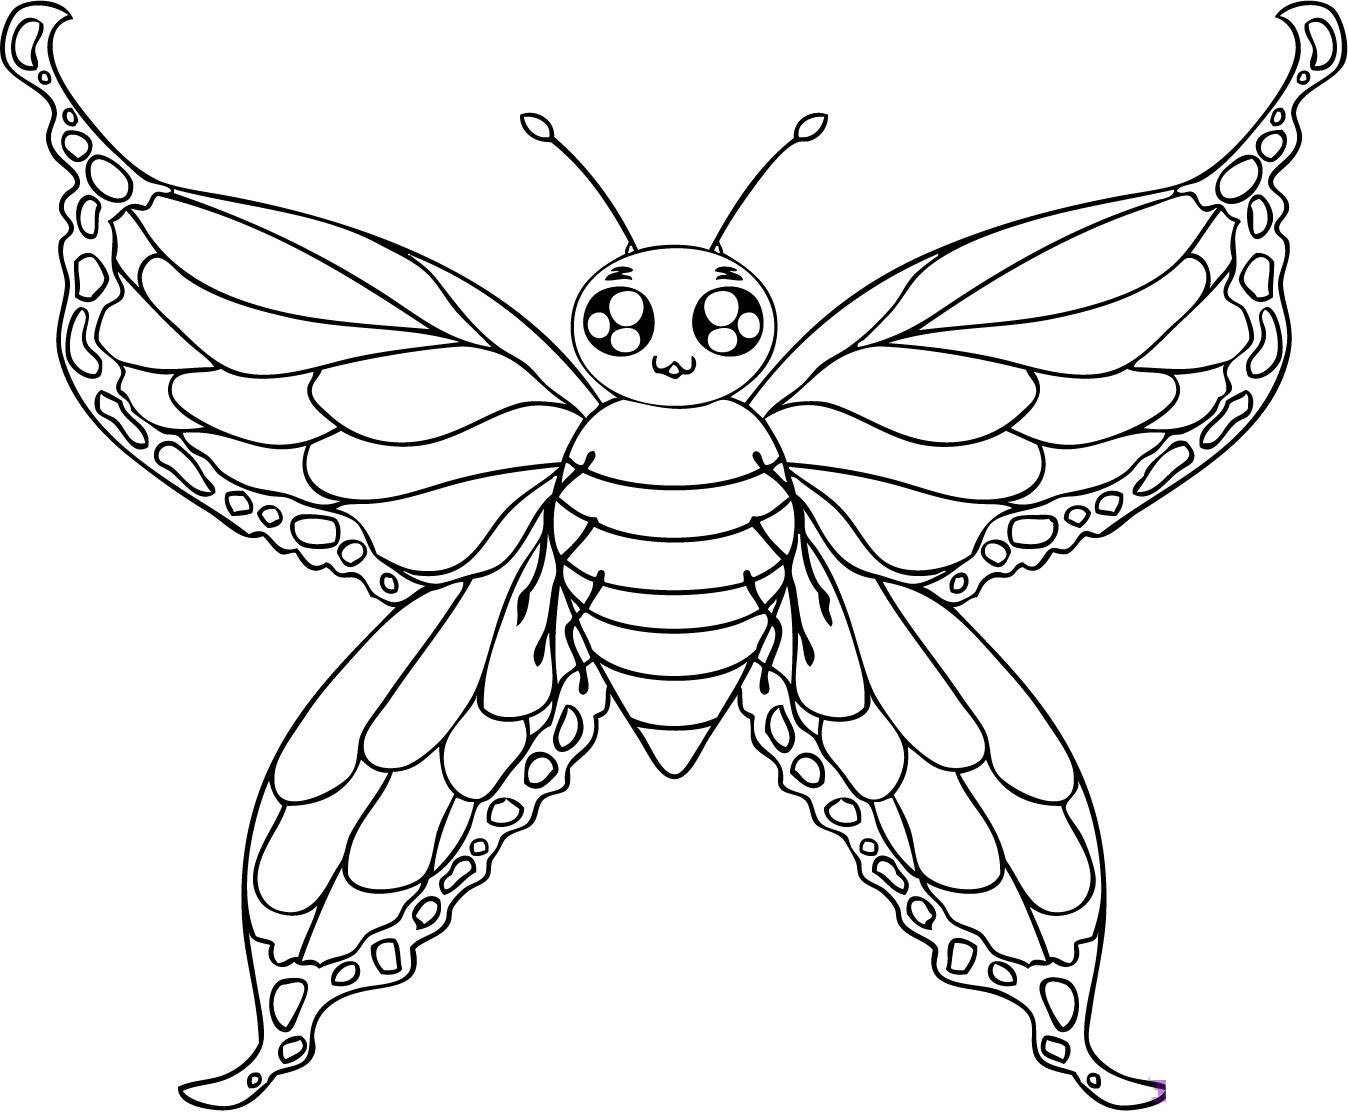 butterfly coloring pages for kids to print - Colour In For Kids